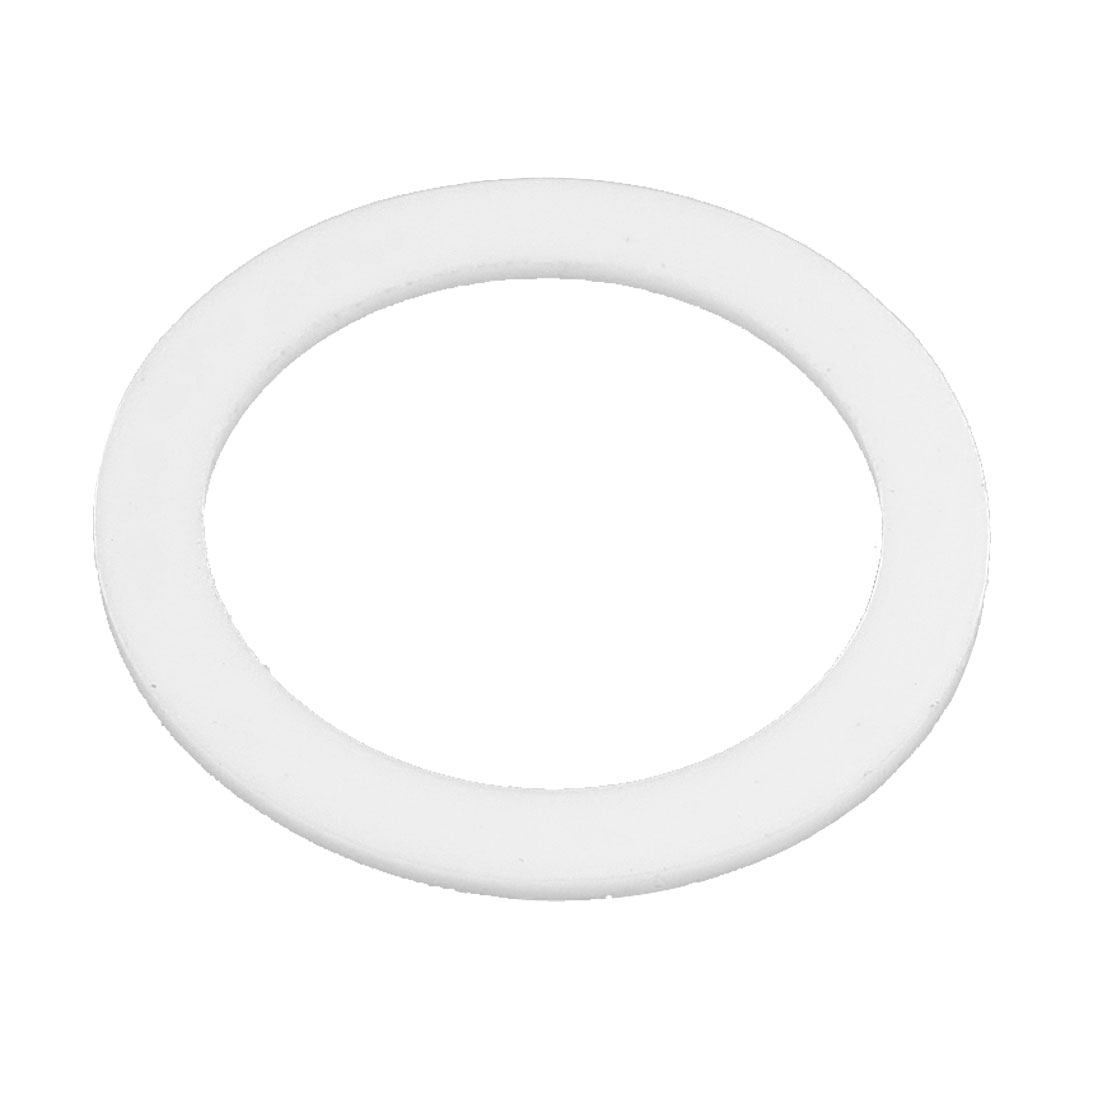 30mm x 40mm x 2mm Flat PTFE Gasket Washer White